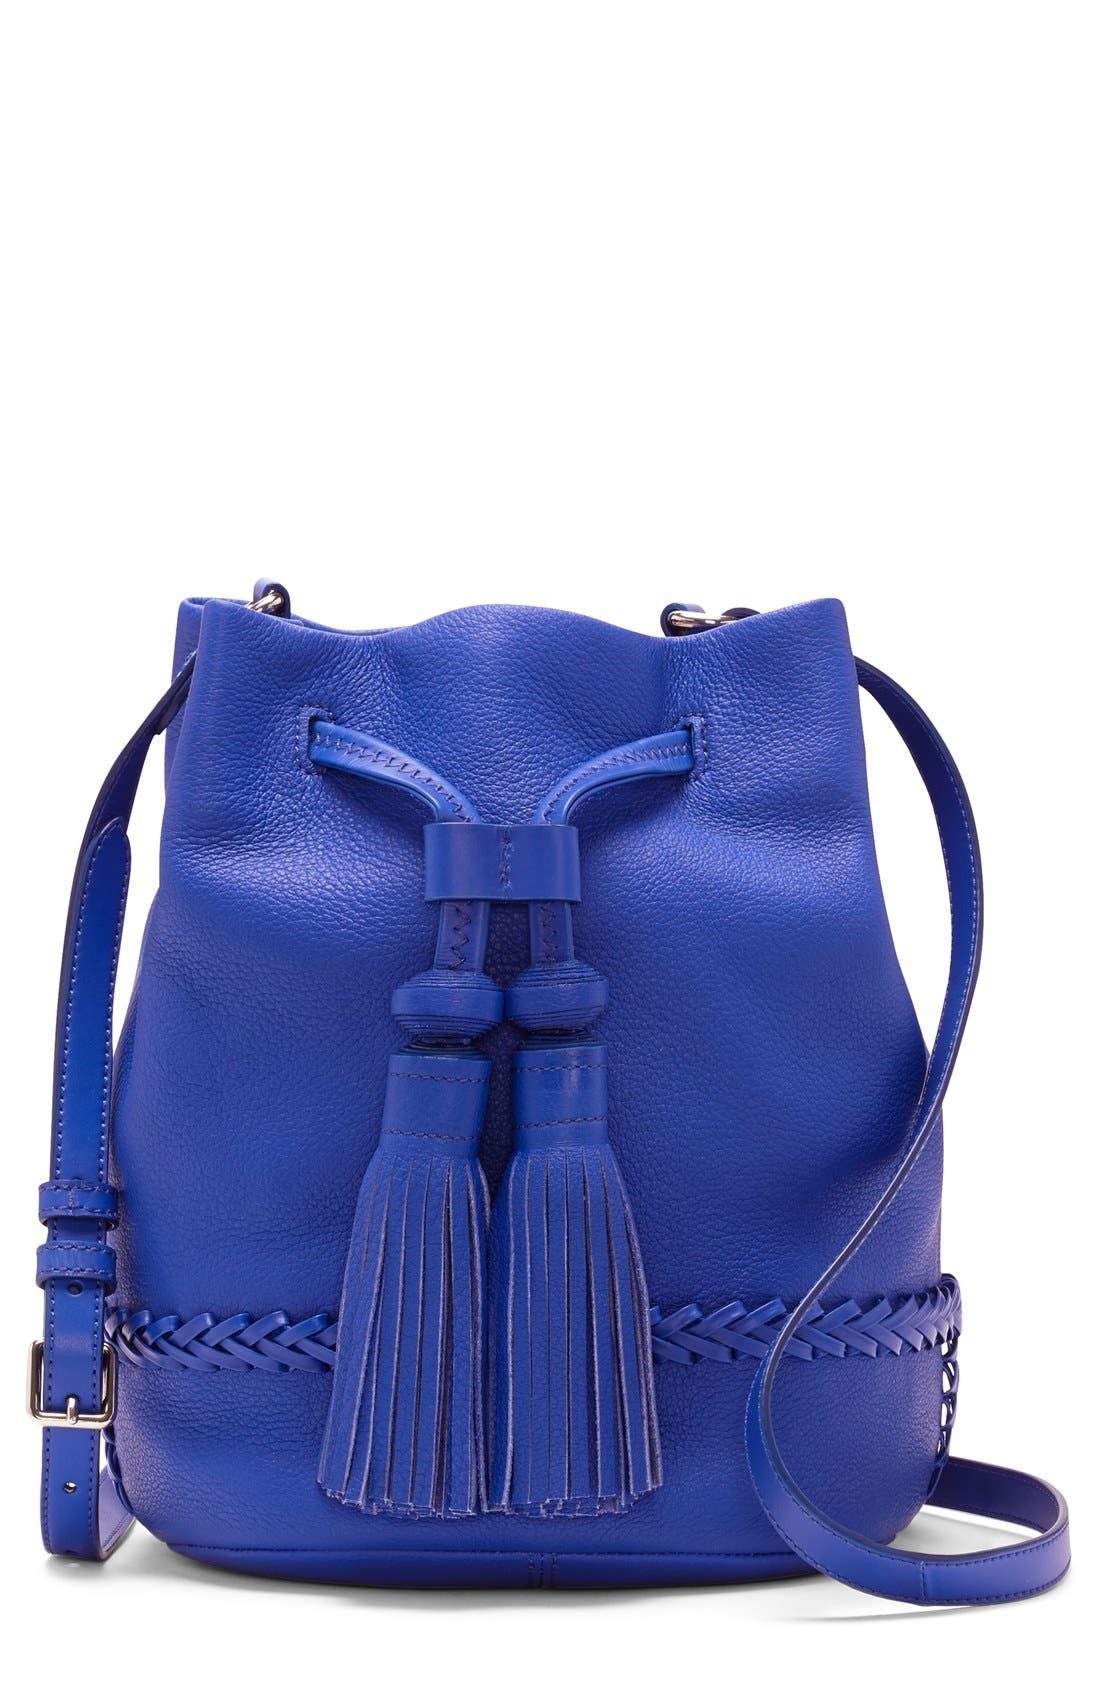 Alternate Image 1 Selected - Vince Camuto 'Leigh' Leather Crossbody Bag